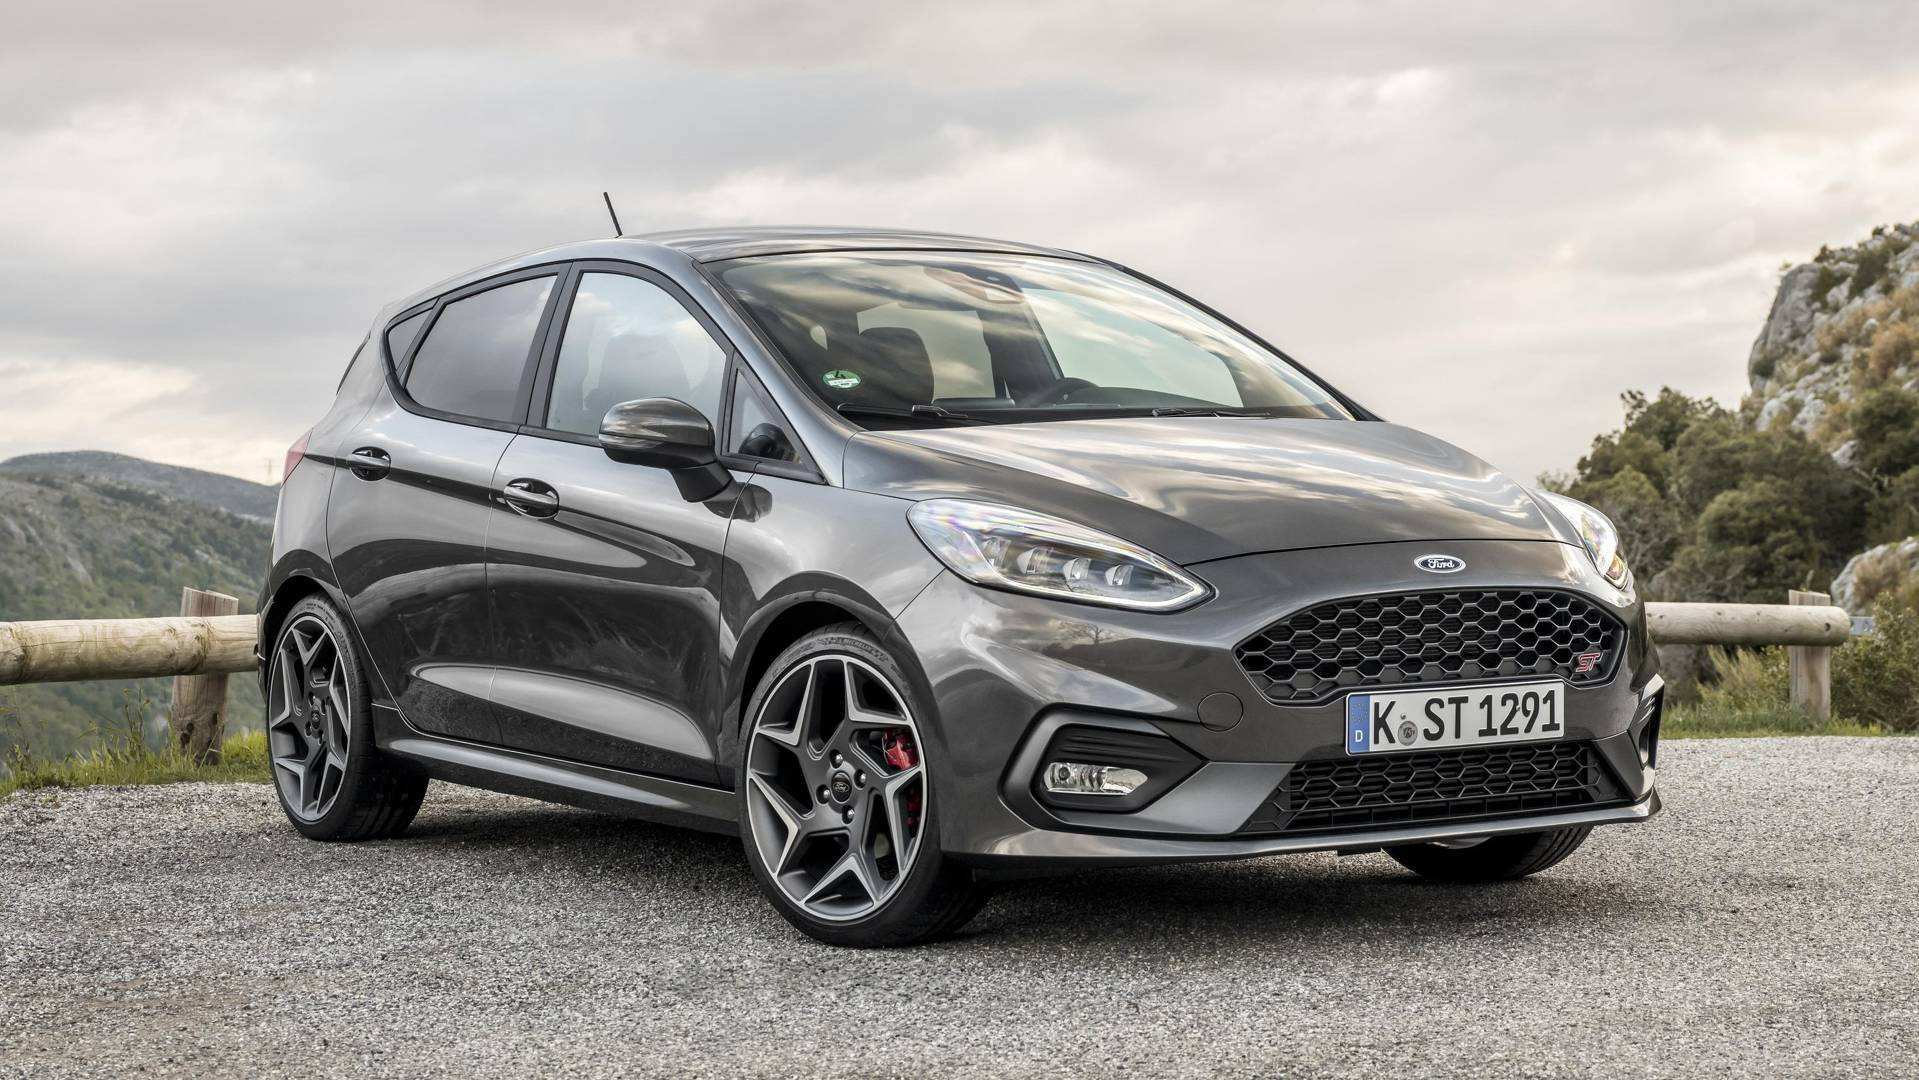 19 A 2020 Ford Fiesta Concept And Review